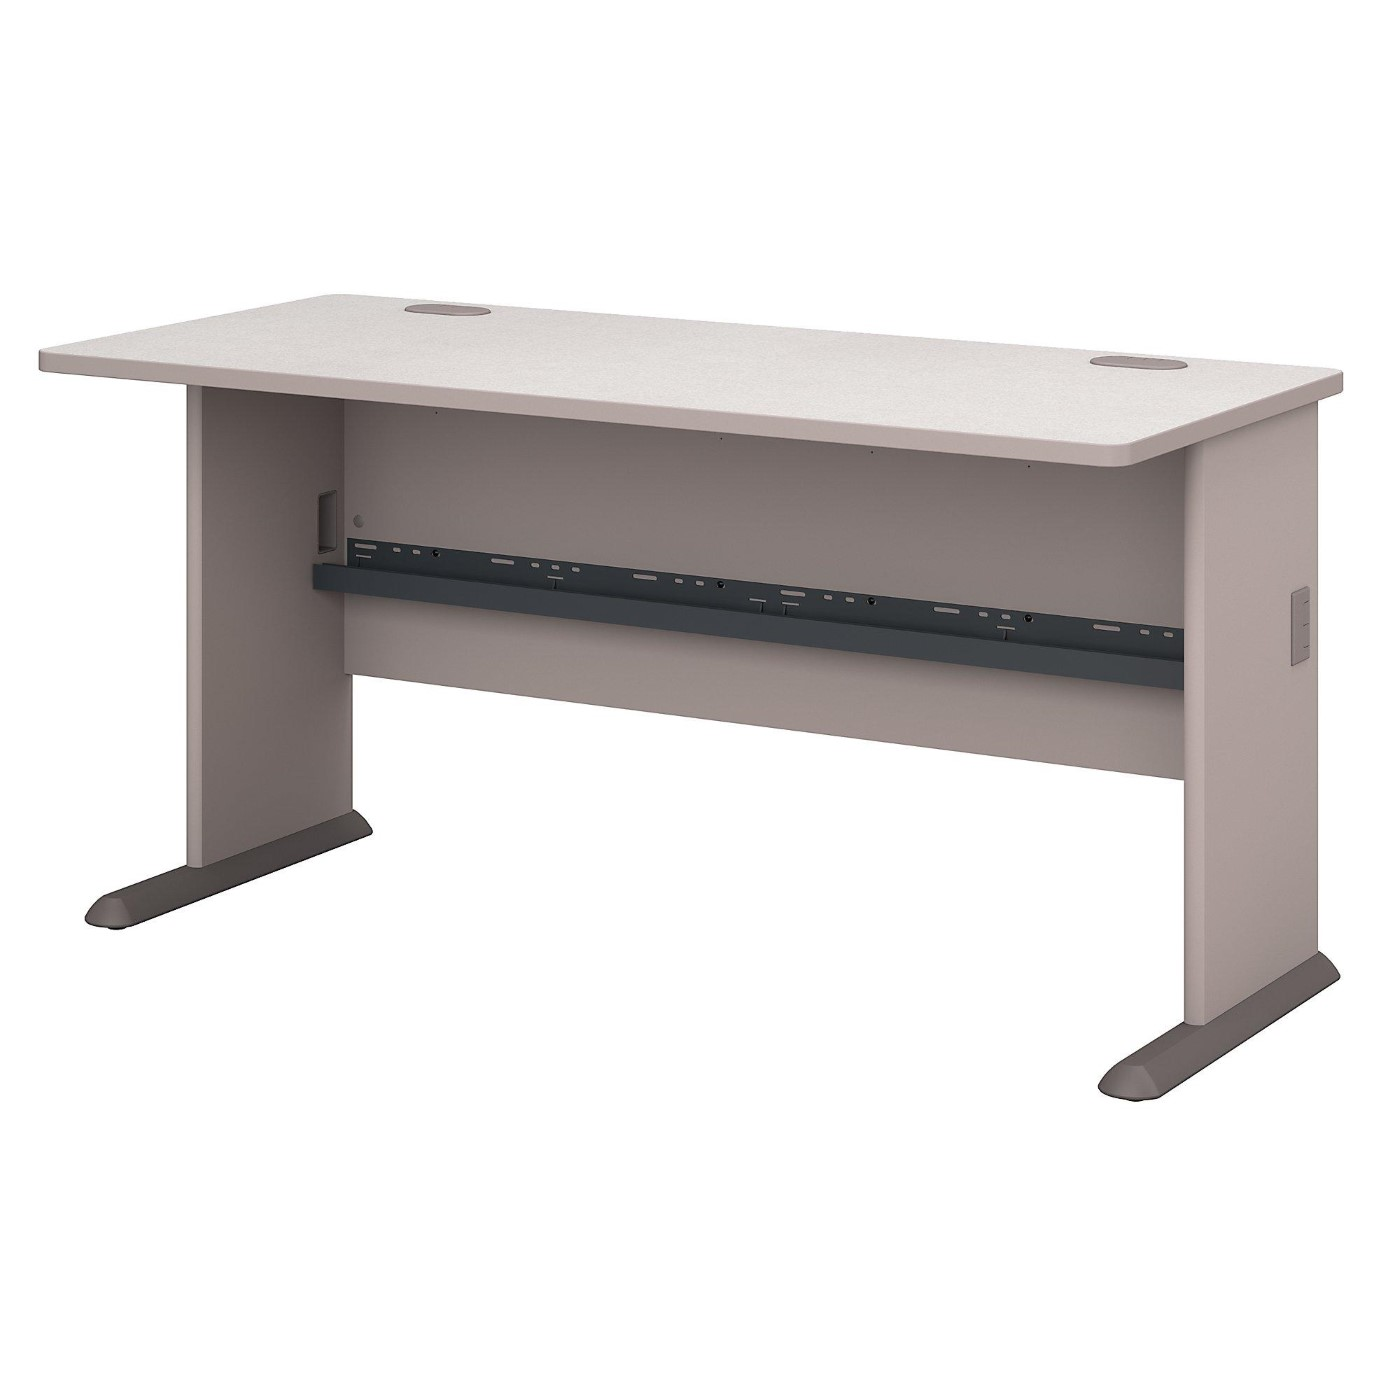 BUSH BUSINESS FURNITURE SERIES A 60W DESK. FREE SHIPPING  VIDEO BELOW.  SALE DEDUCT 10% MORE ENTER '10percent' IN COUPON CODE BOX WHILE CHECKING OUT.